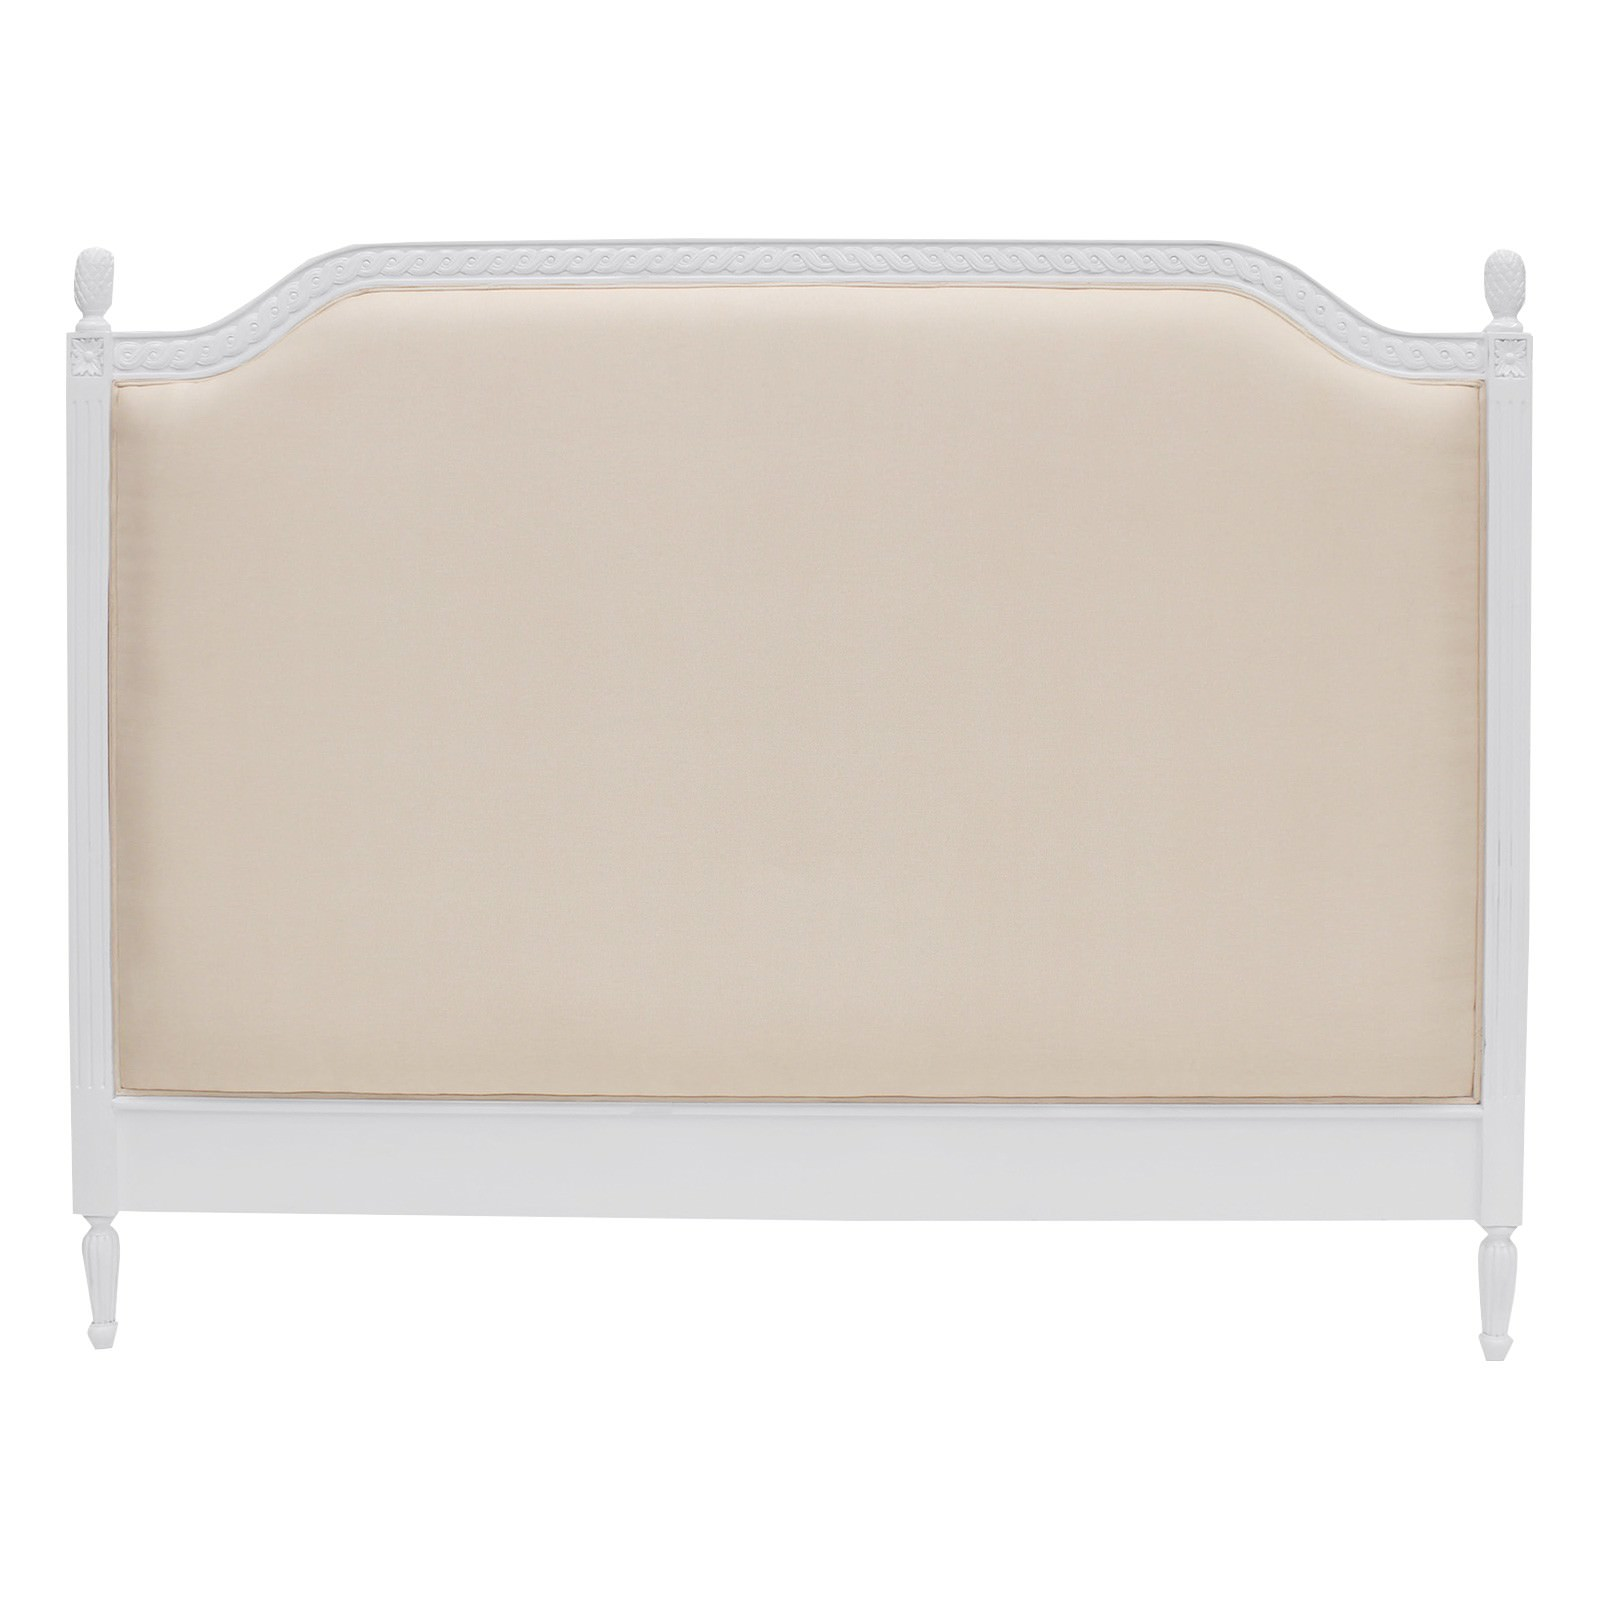 Lapalisse Hand Crafted Upholstered  Mahogany Timber Bed Headboard, King, White